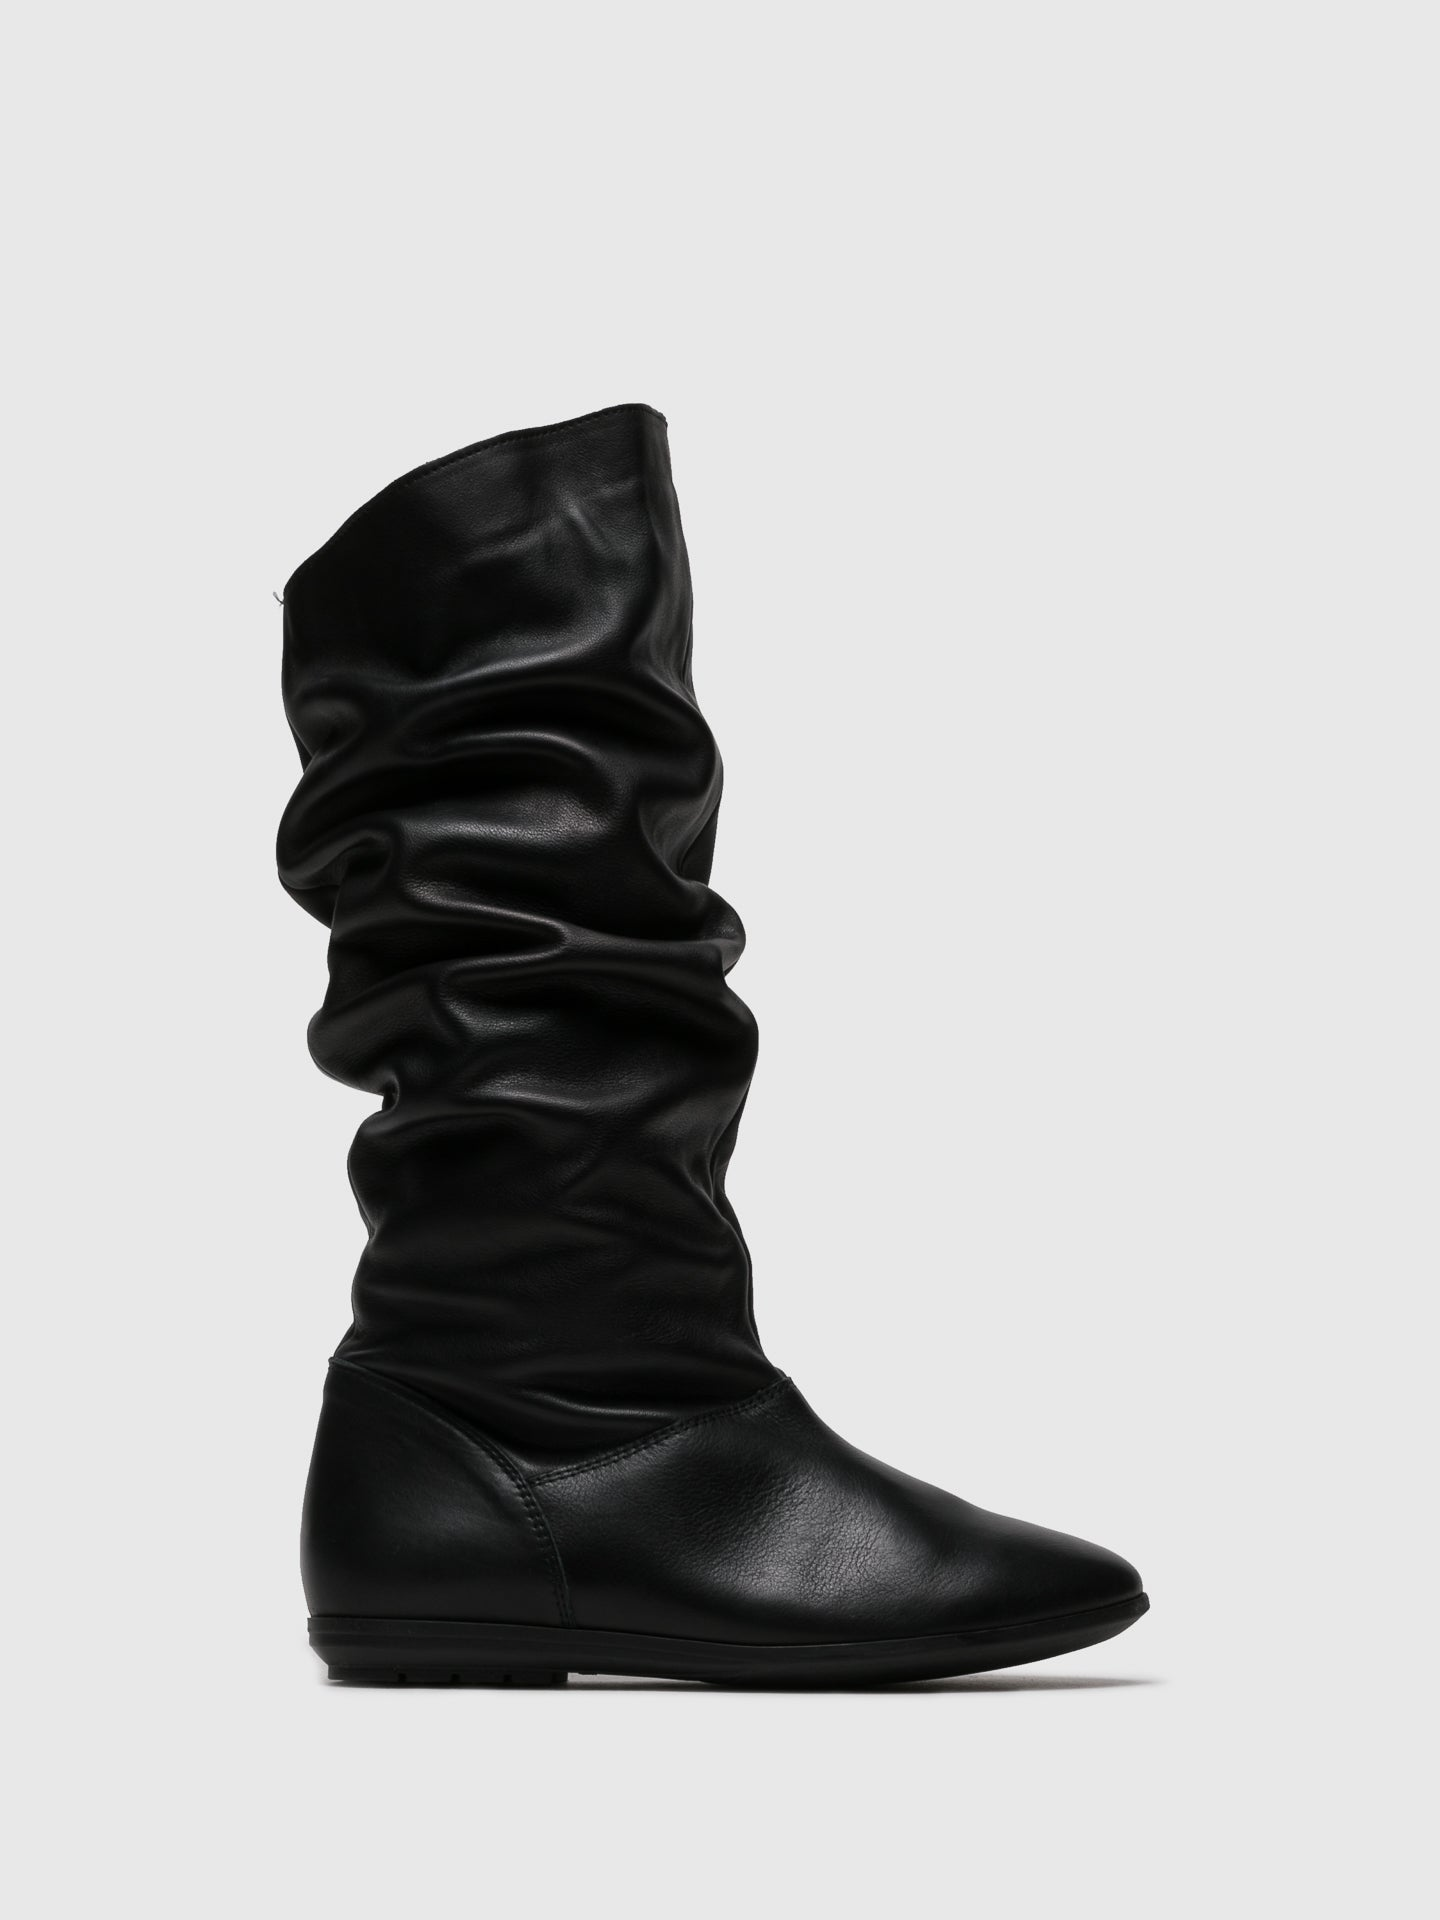 Sotoalto Black Knee-High Boots